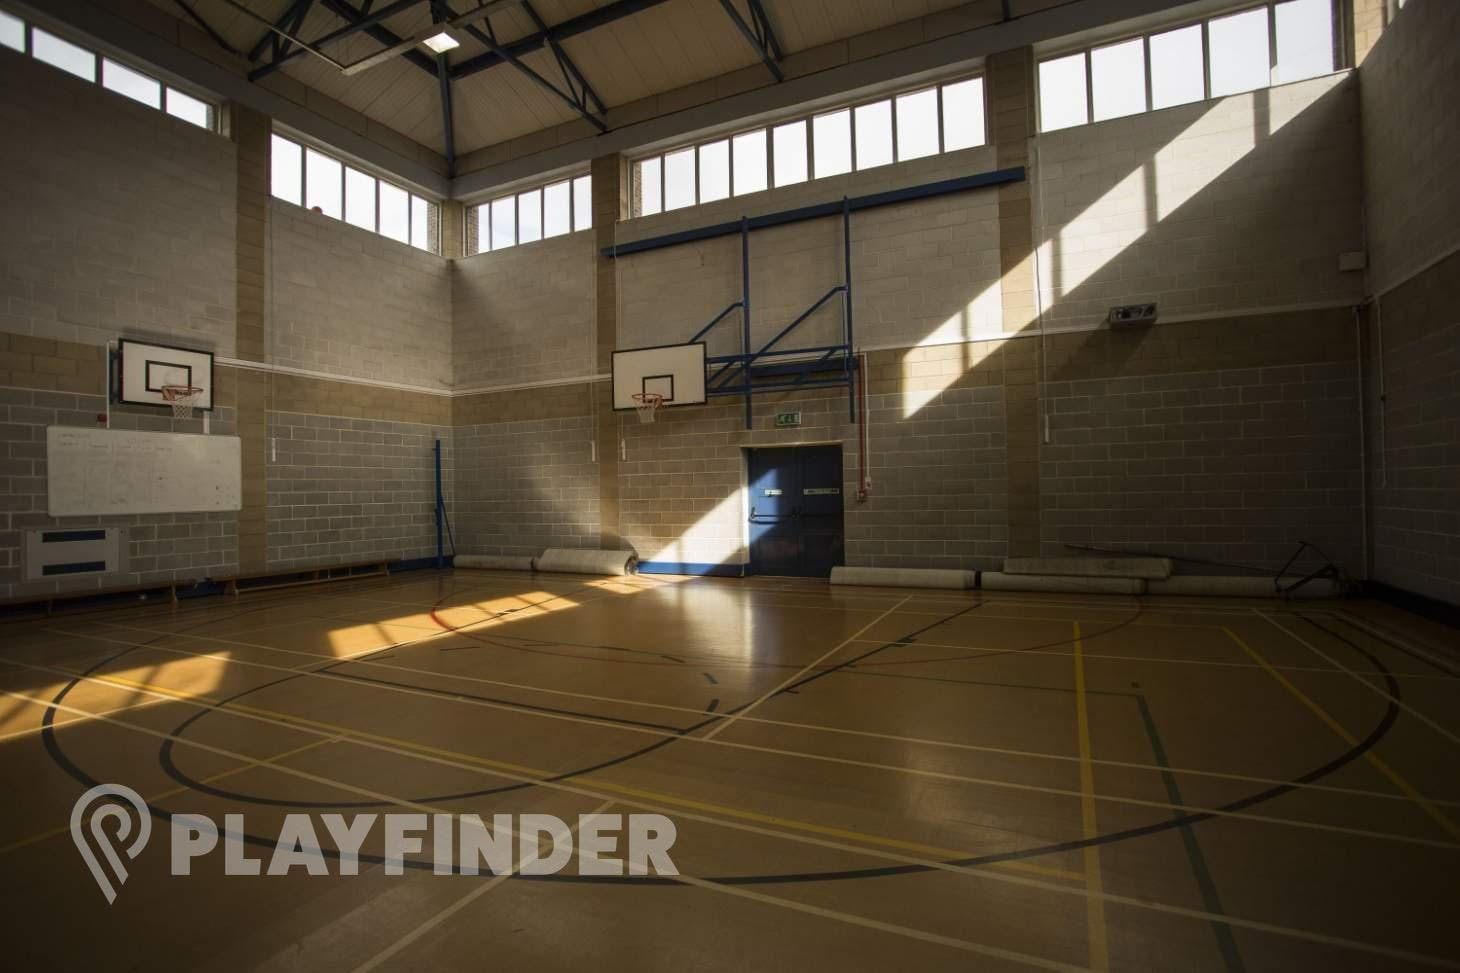 Copthall School Indoor | Hard badminton court